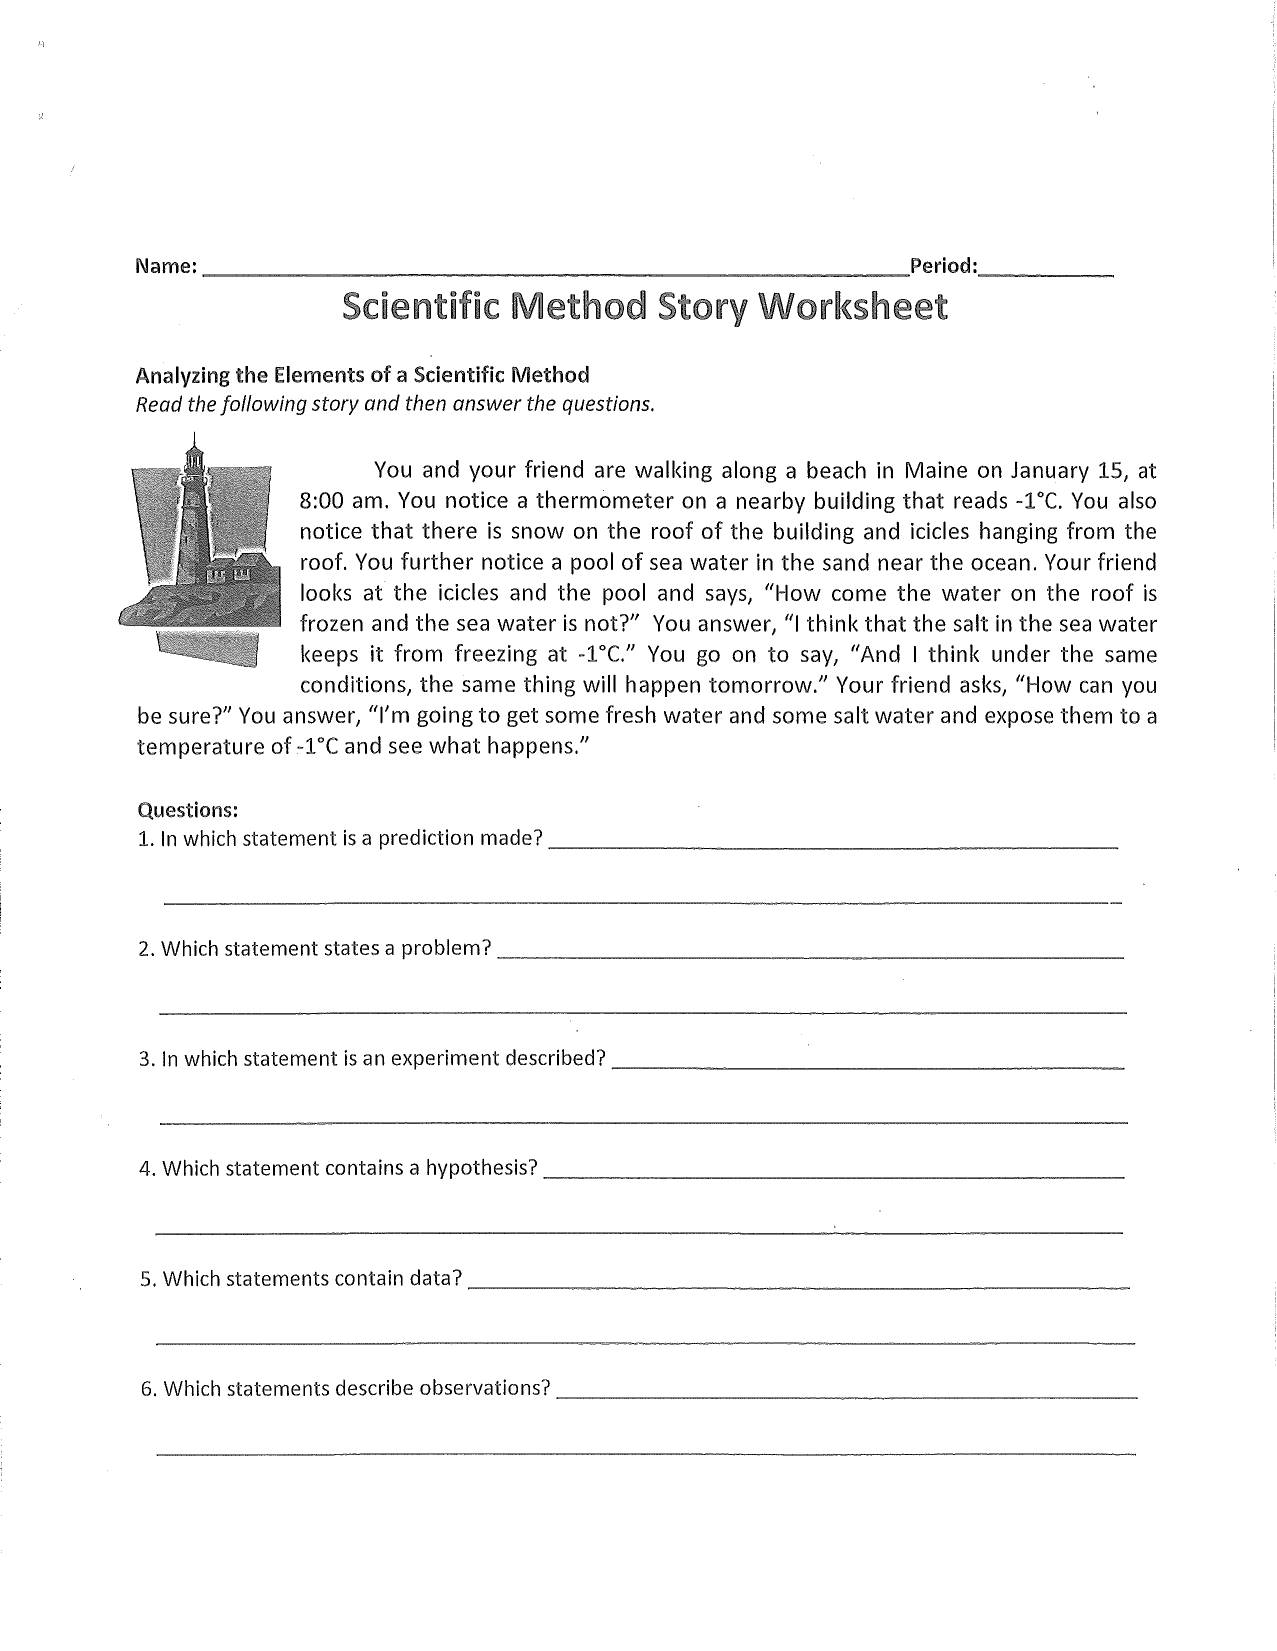 Simpsons Scientific Method Worksheet Answers Sharebrowse – The Scientific Method Worksheet